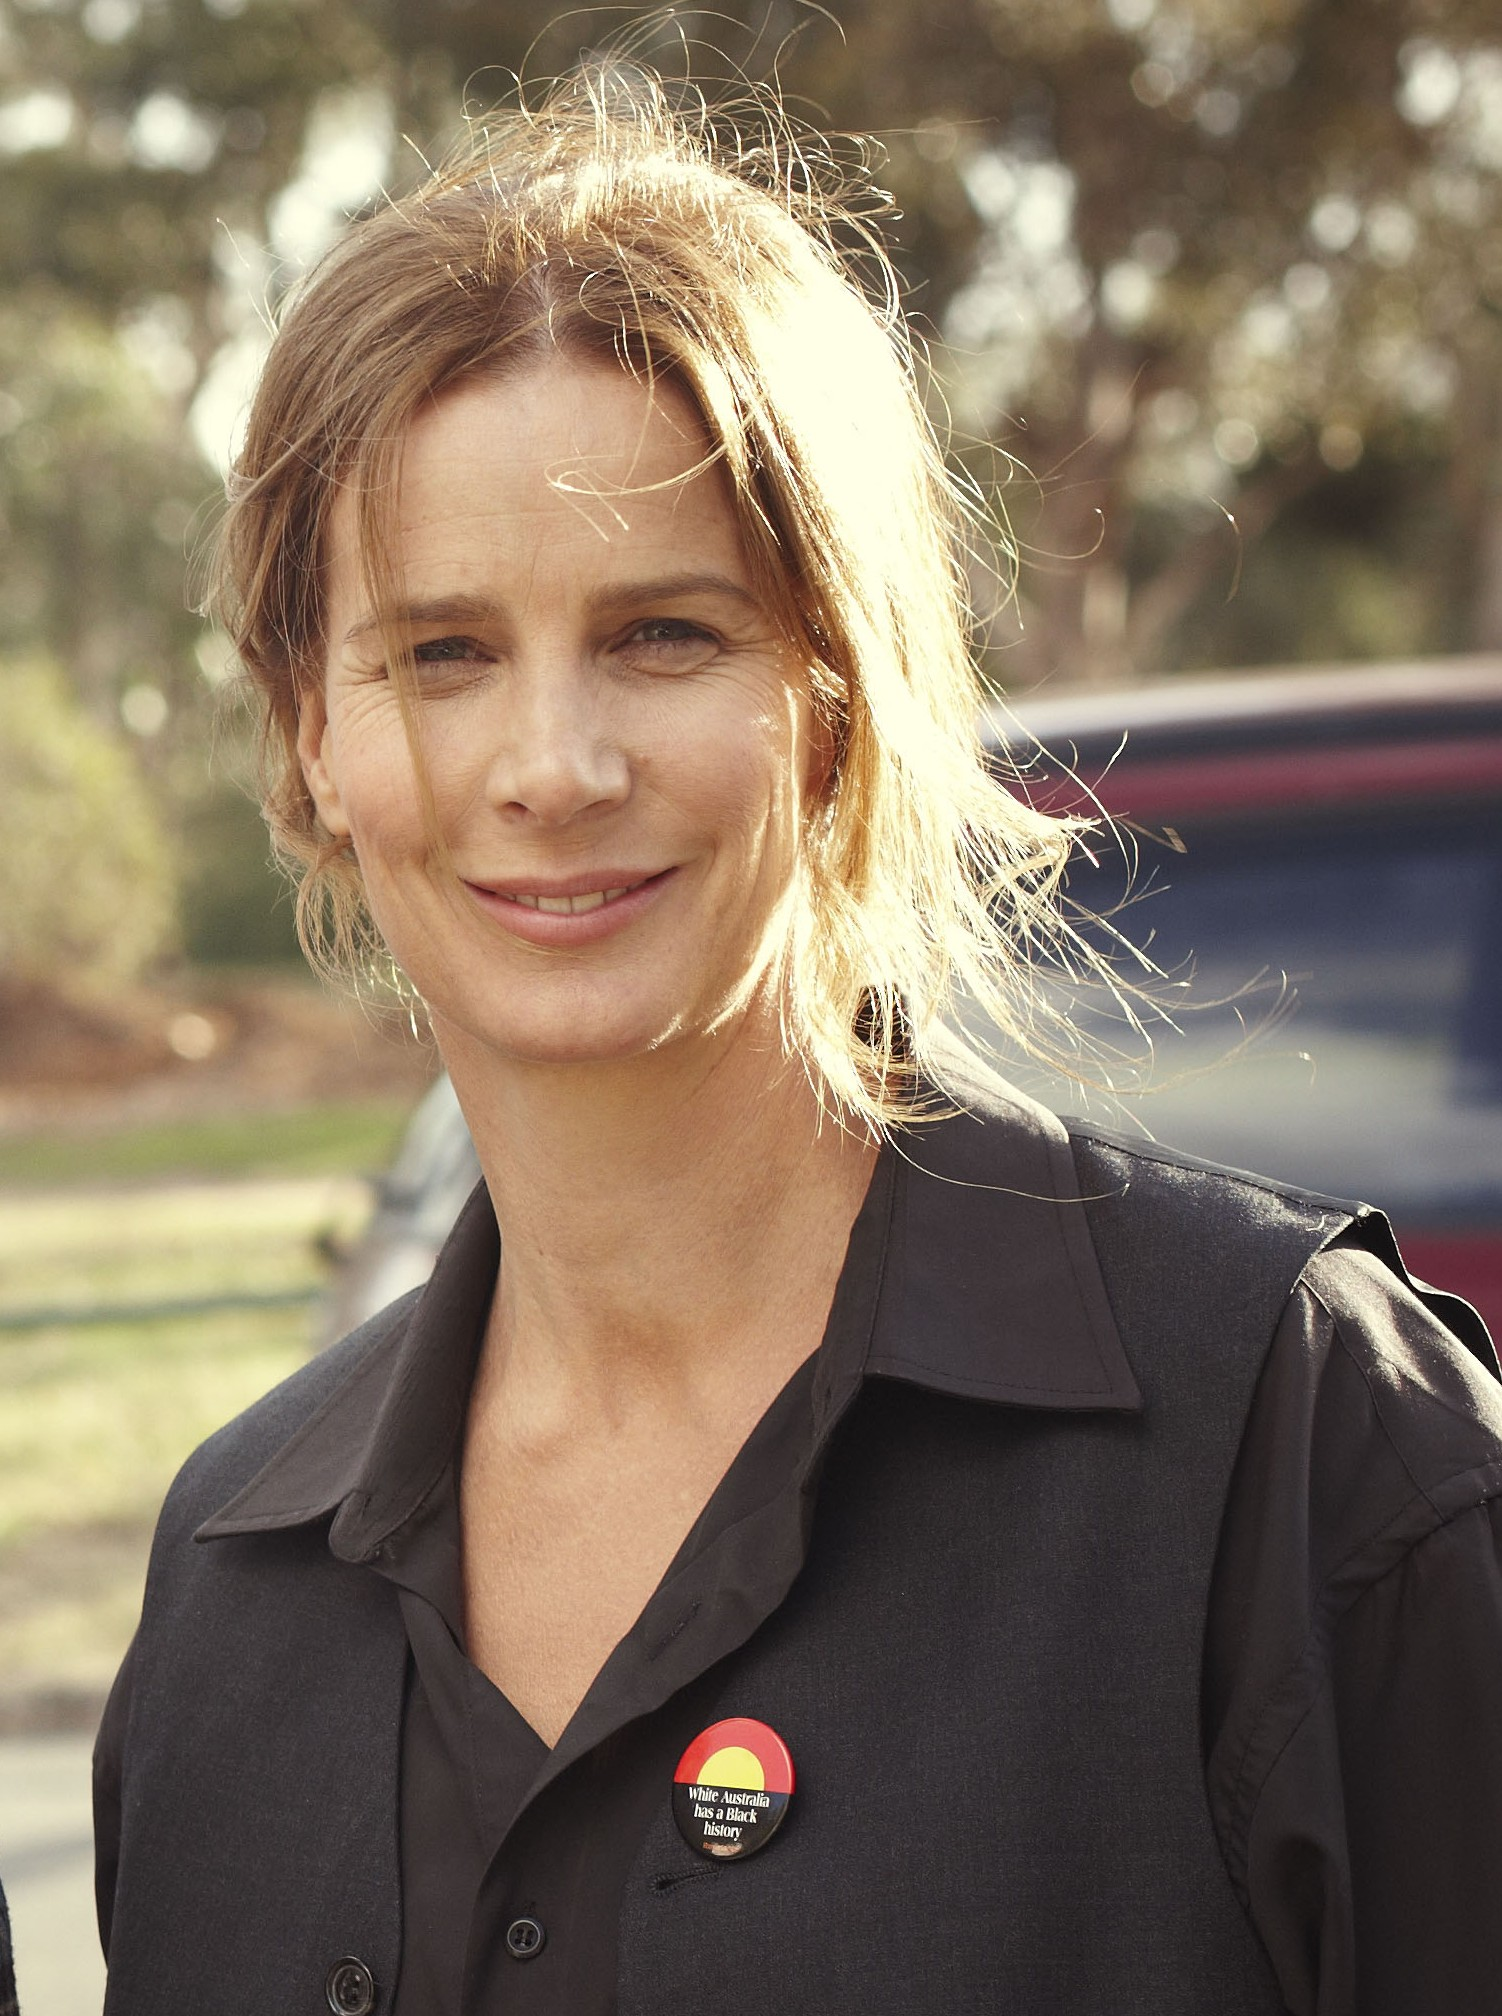 b5719218a4a Rachel Griffiths - Wikipedia